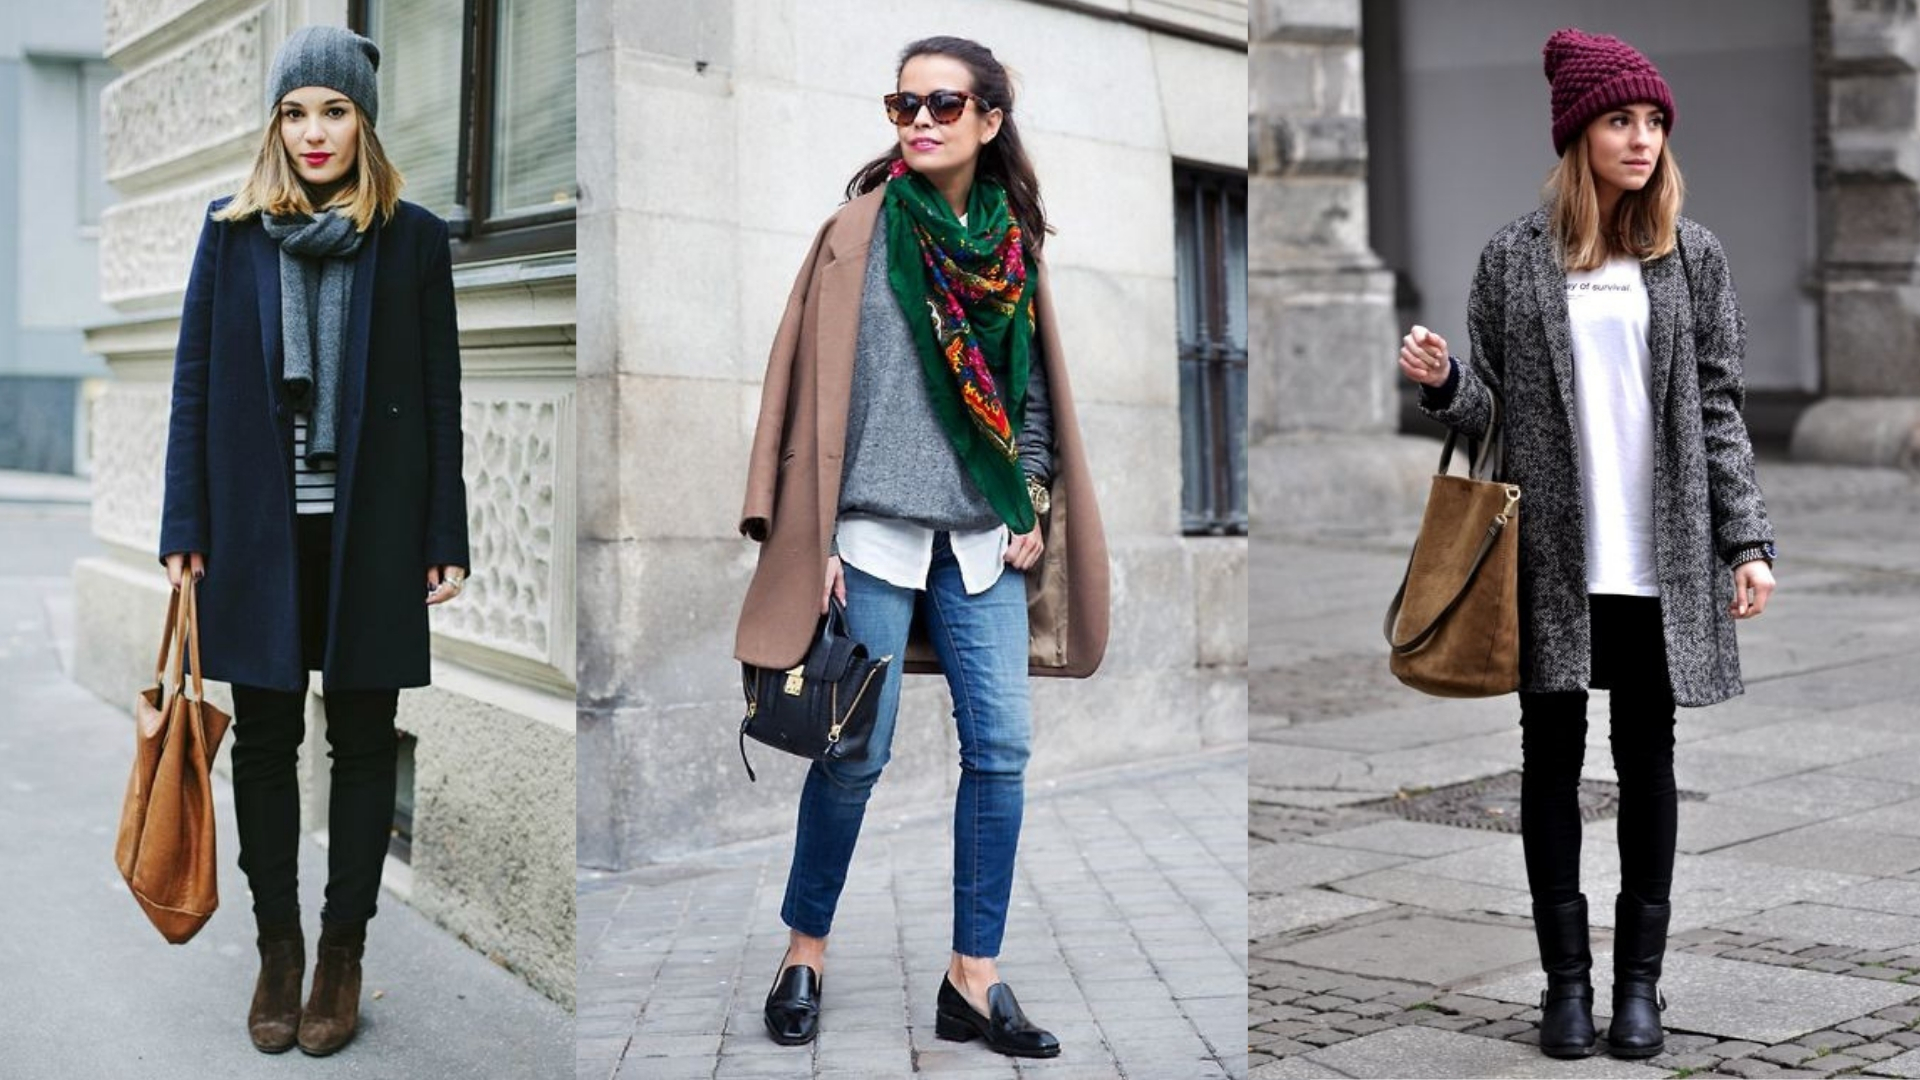 couleur, chic, winter, manteau, accesoire, look pop, fashion, mode, écharpe, bonnet